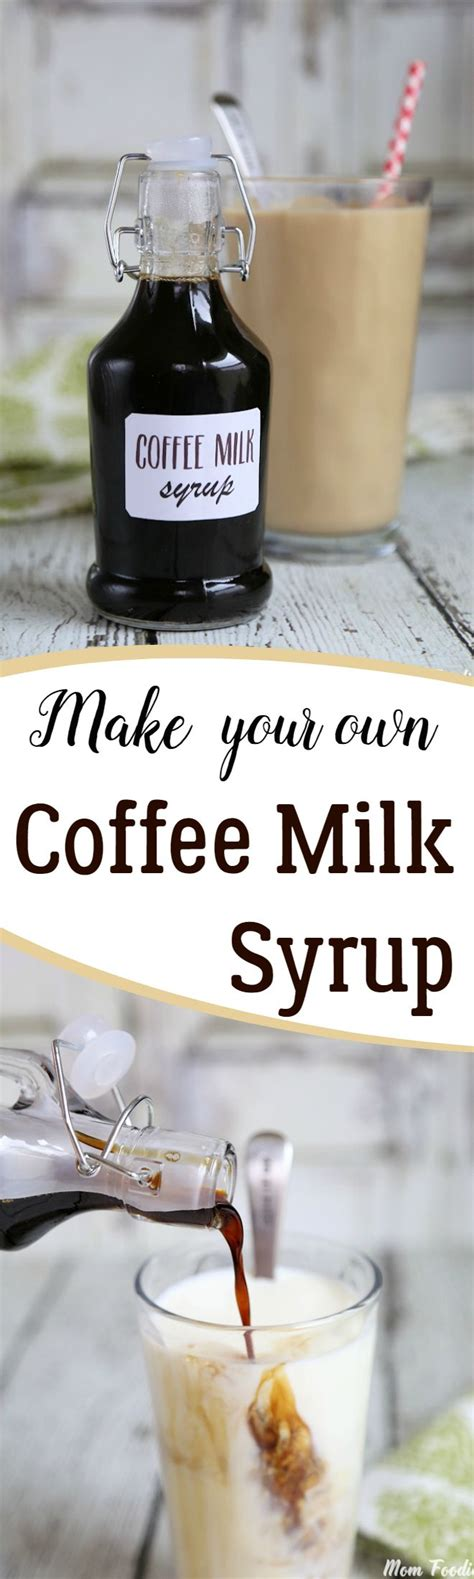 According to the wall street journal, it was to the great irritation of the state's vocal frozen lemonade lobby. Coffee Milk Syrup Recipe to make the Rhode Island favorite, Coffee Milk & Free Printable Labels ...